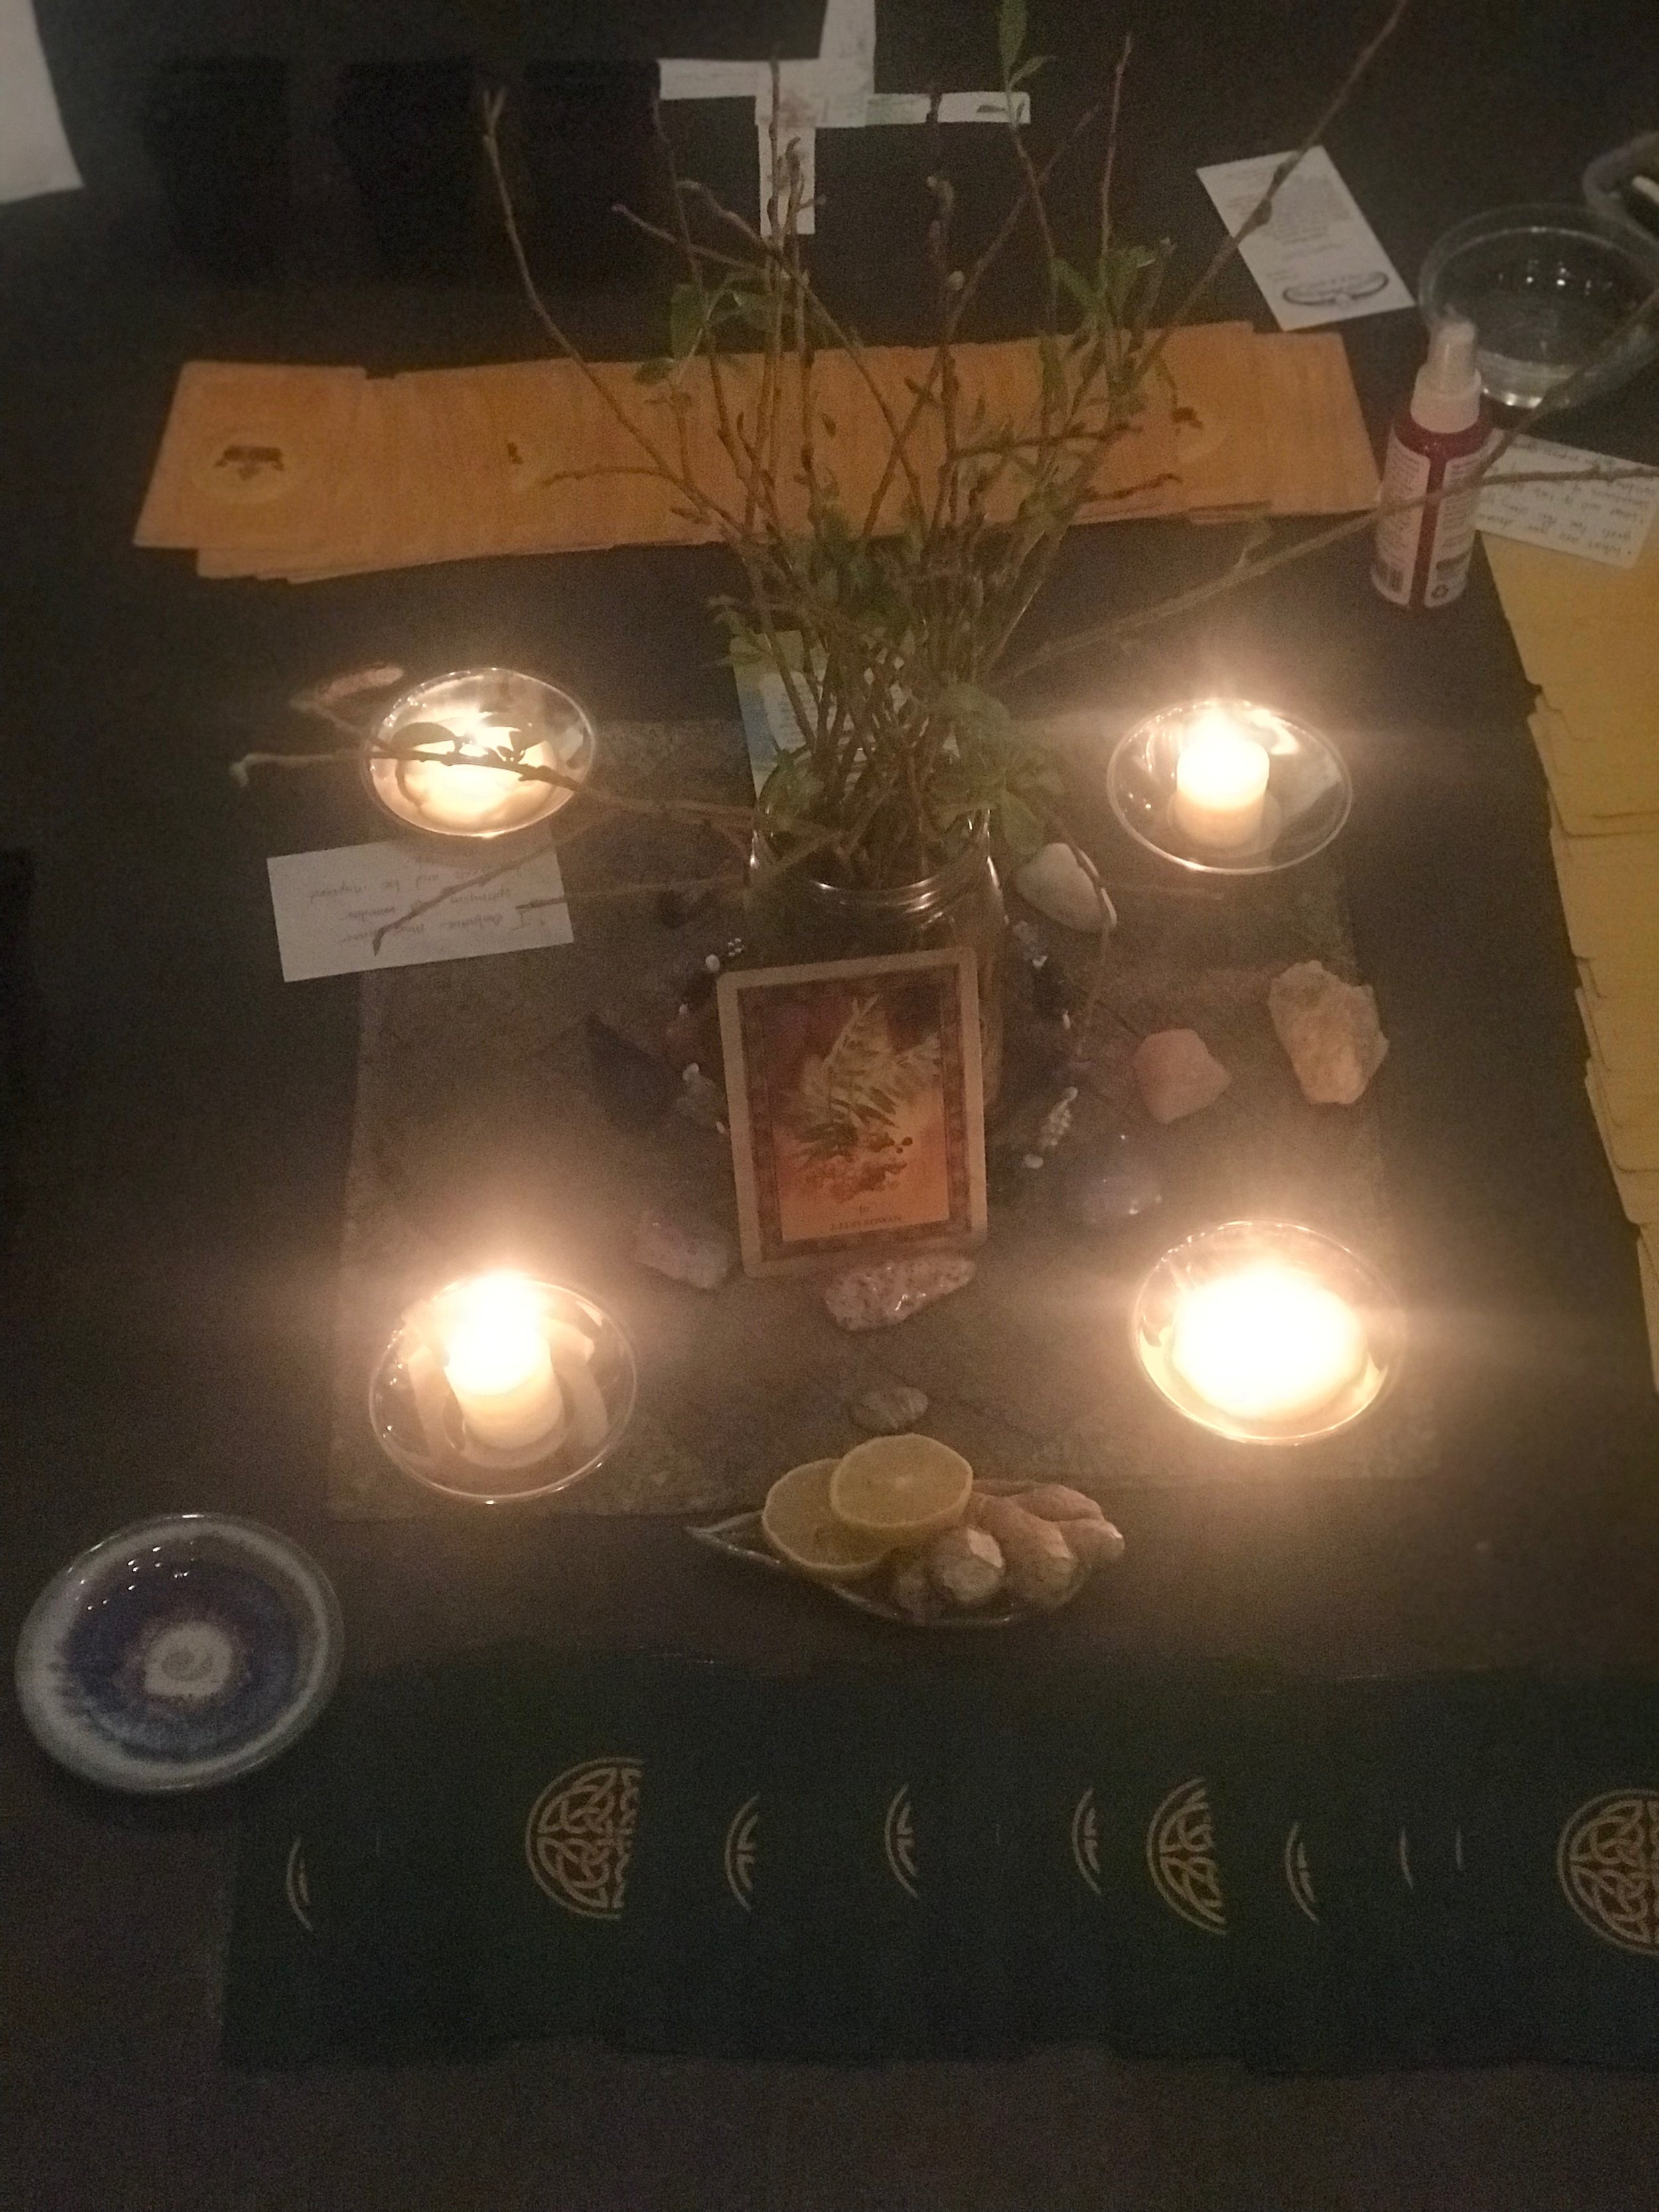 New Moon Altar - Our altar at this month's New Moon Red Tent Circle at Fettle Botanic in Bend.